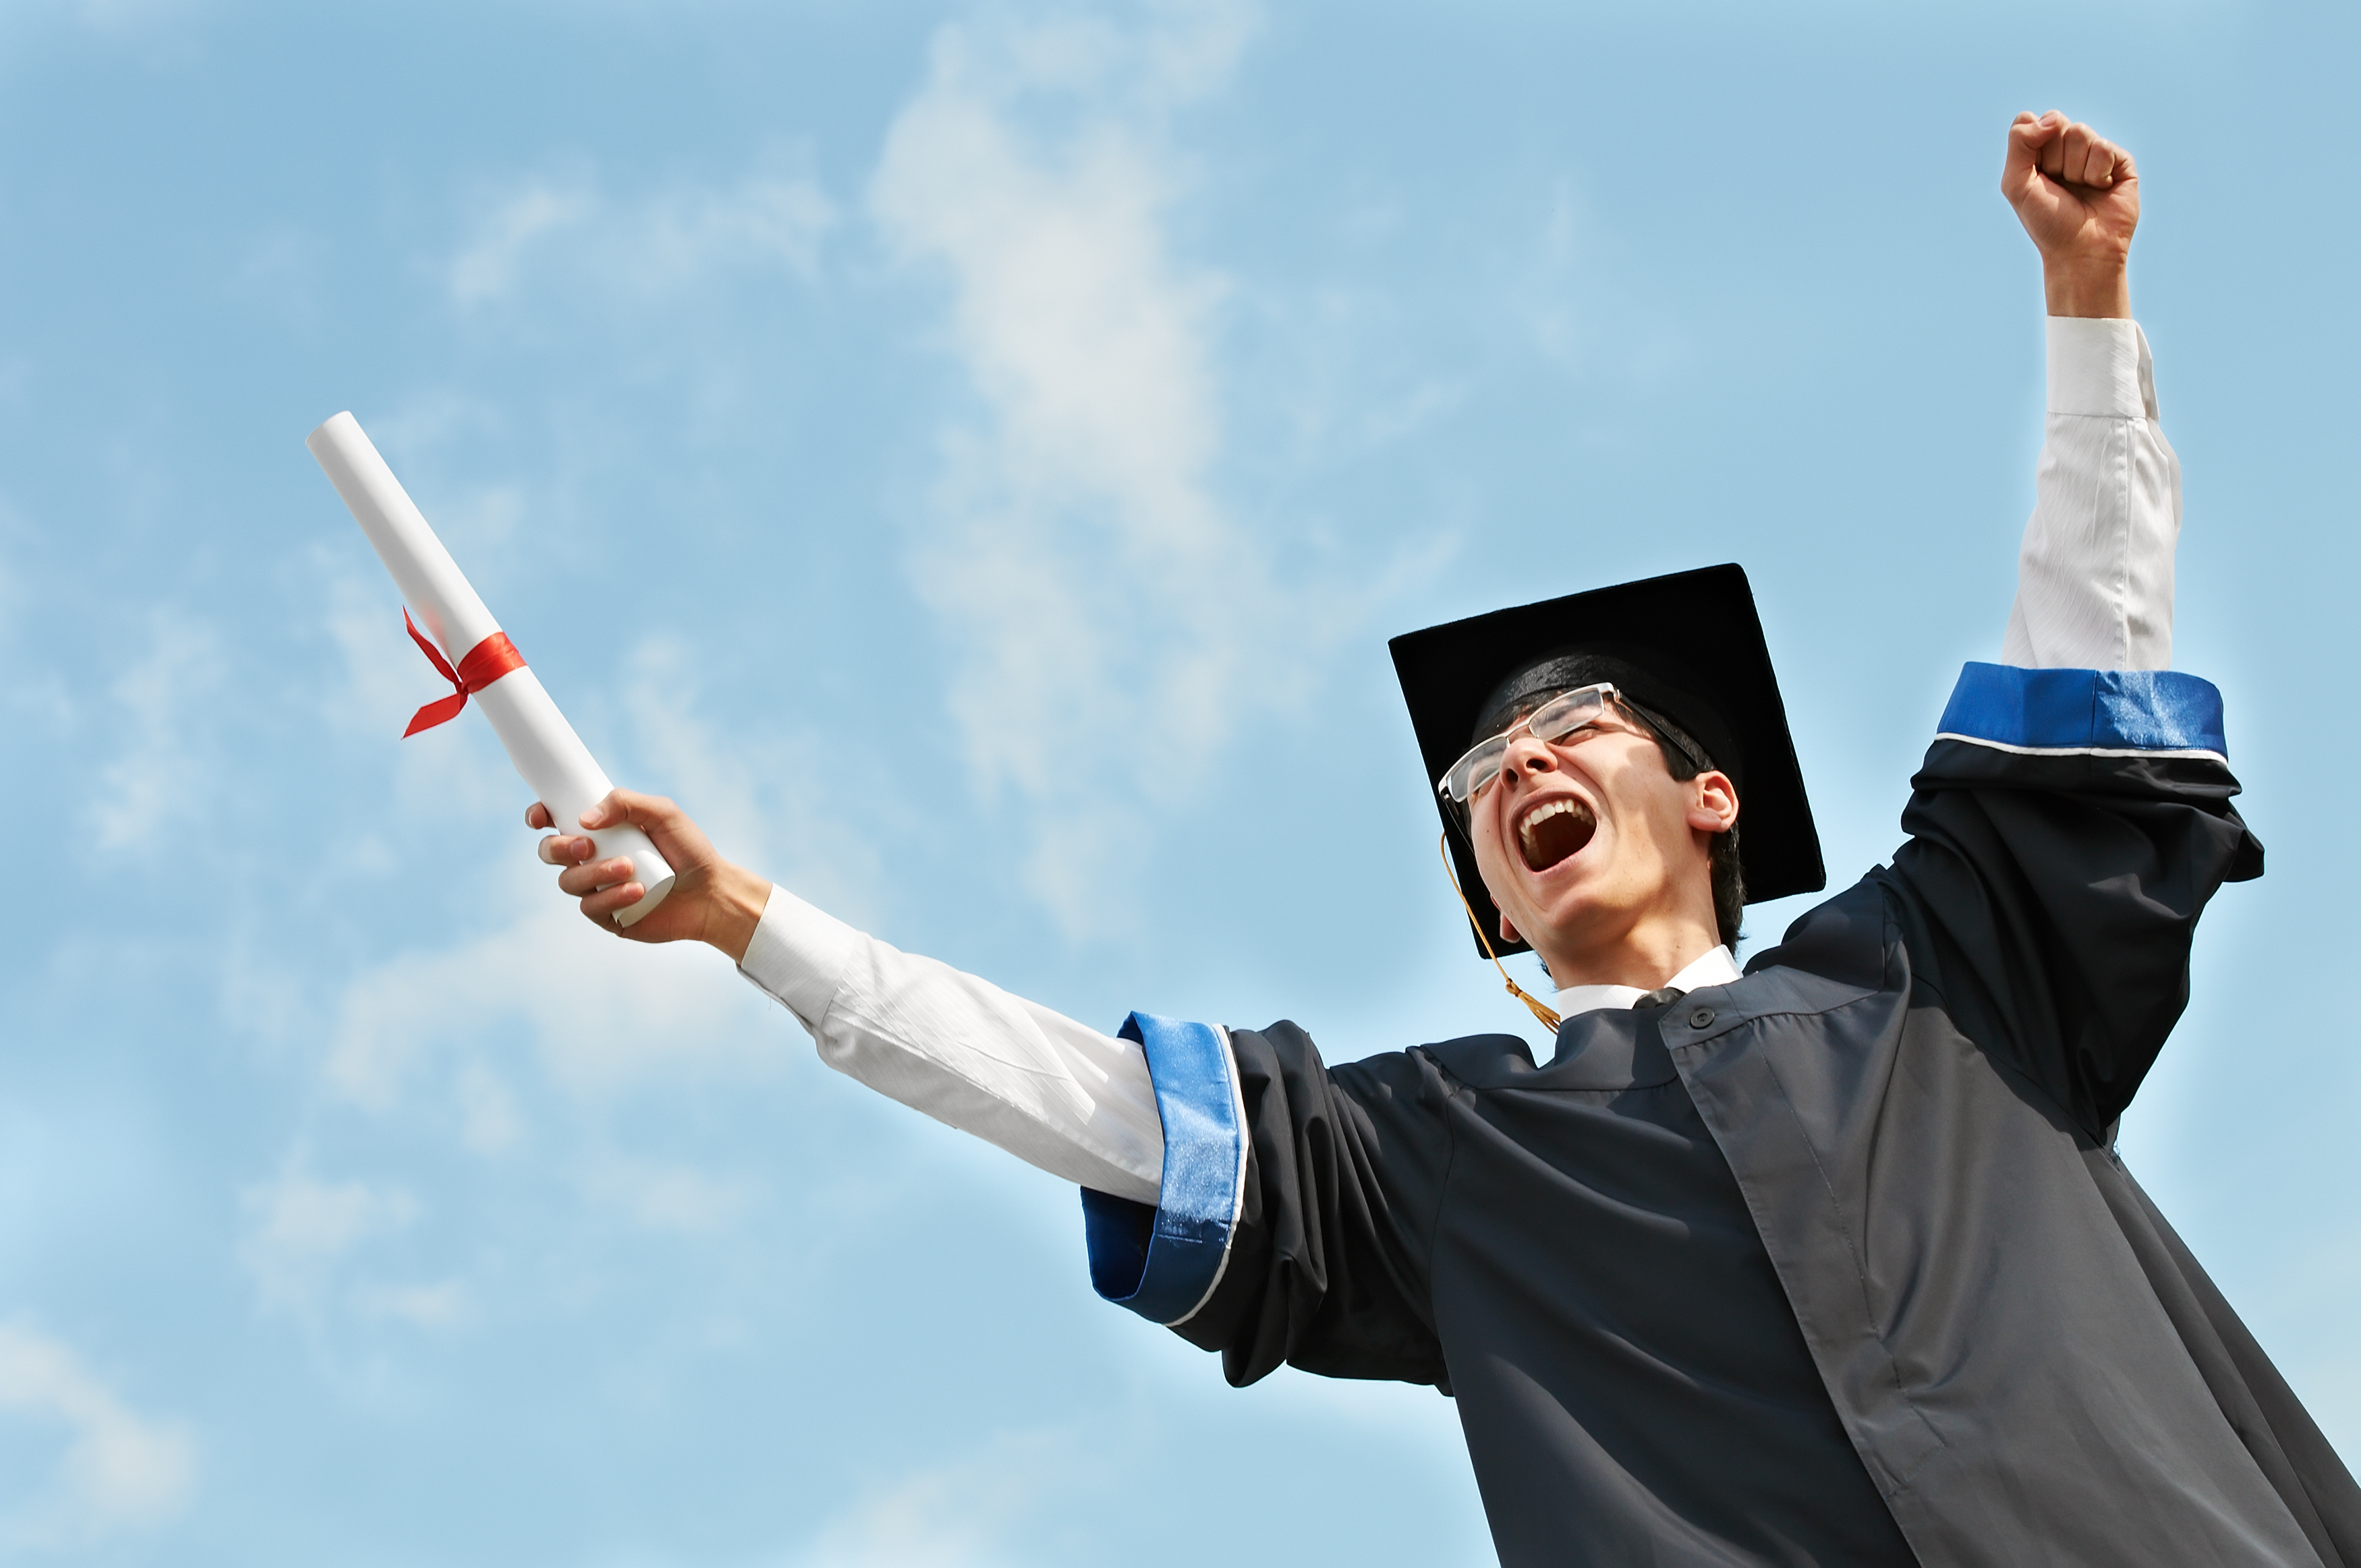 excited graduate student in gown with risen hands holding diploma over blue sky